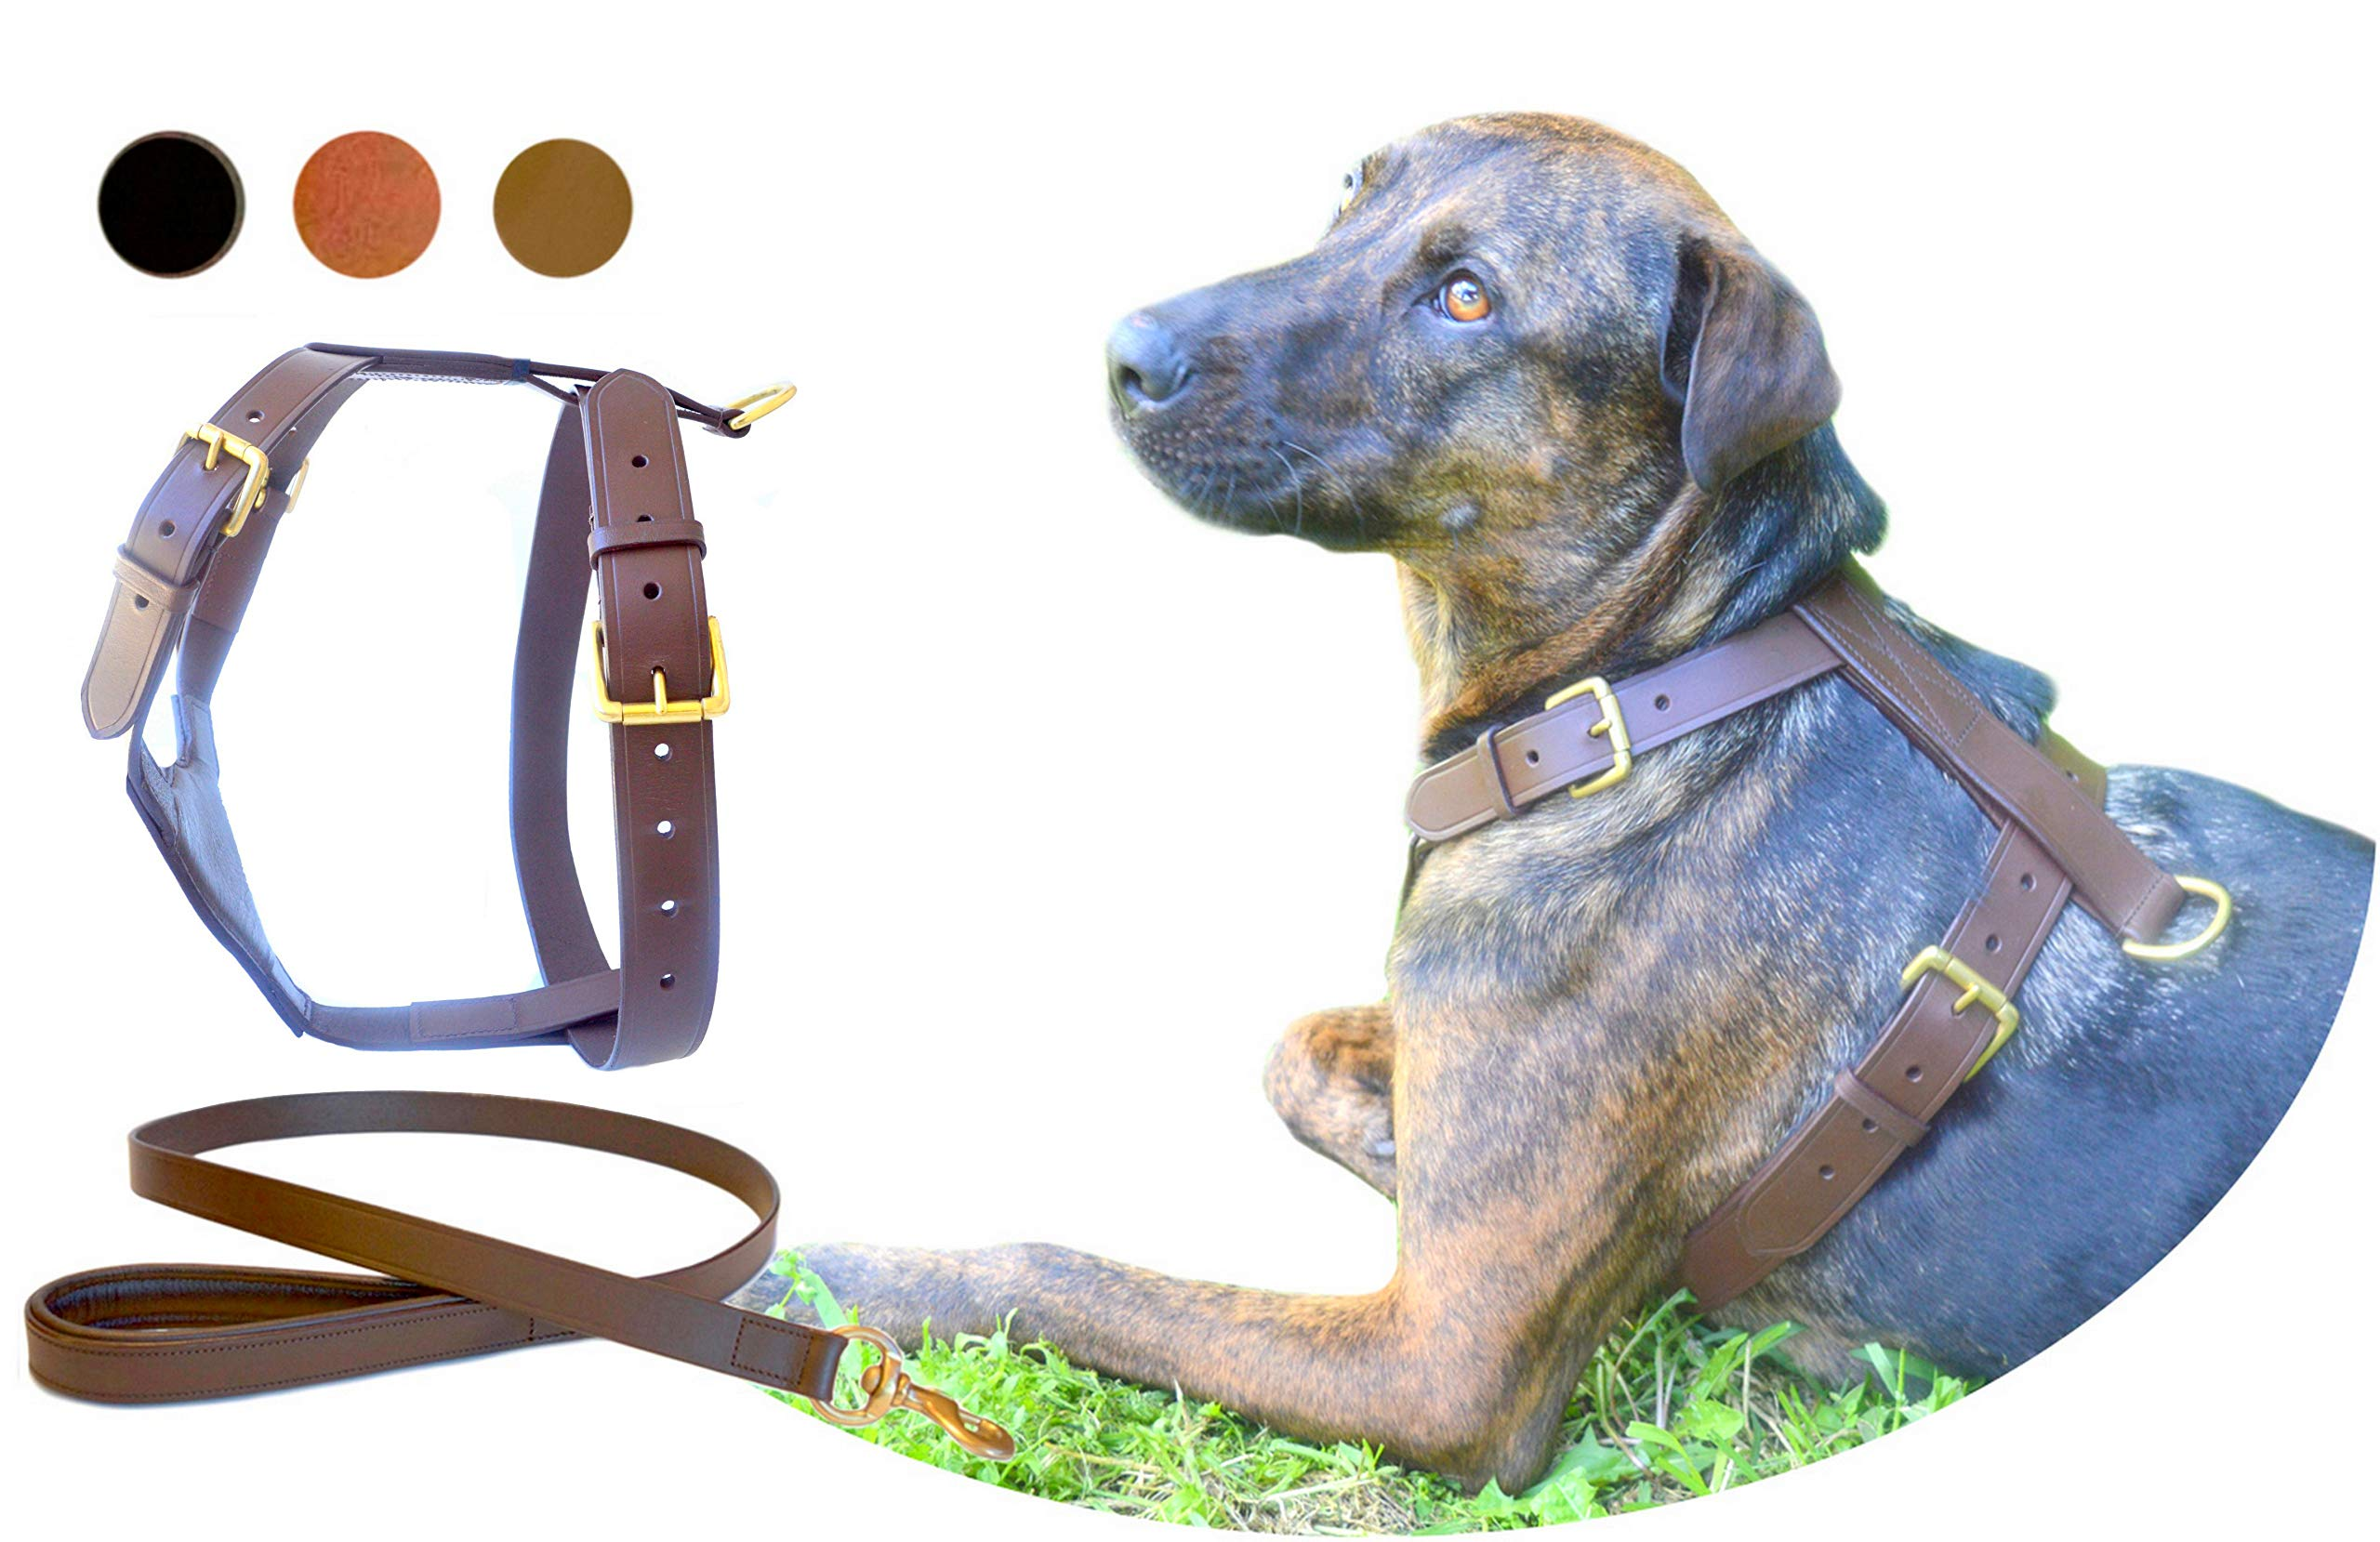 TUGBY XS/S/M/L/XL/XXL Dog Leather Harness Sets (M, Brown)